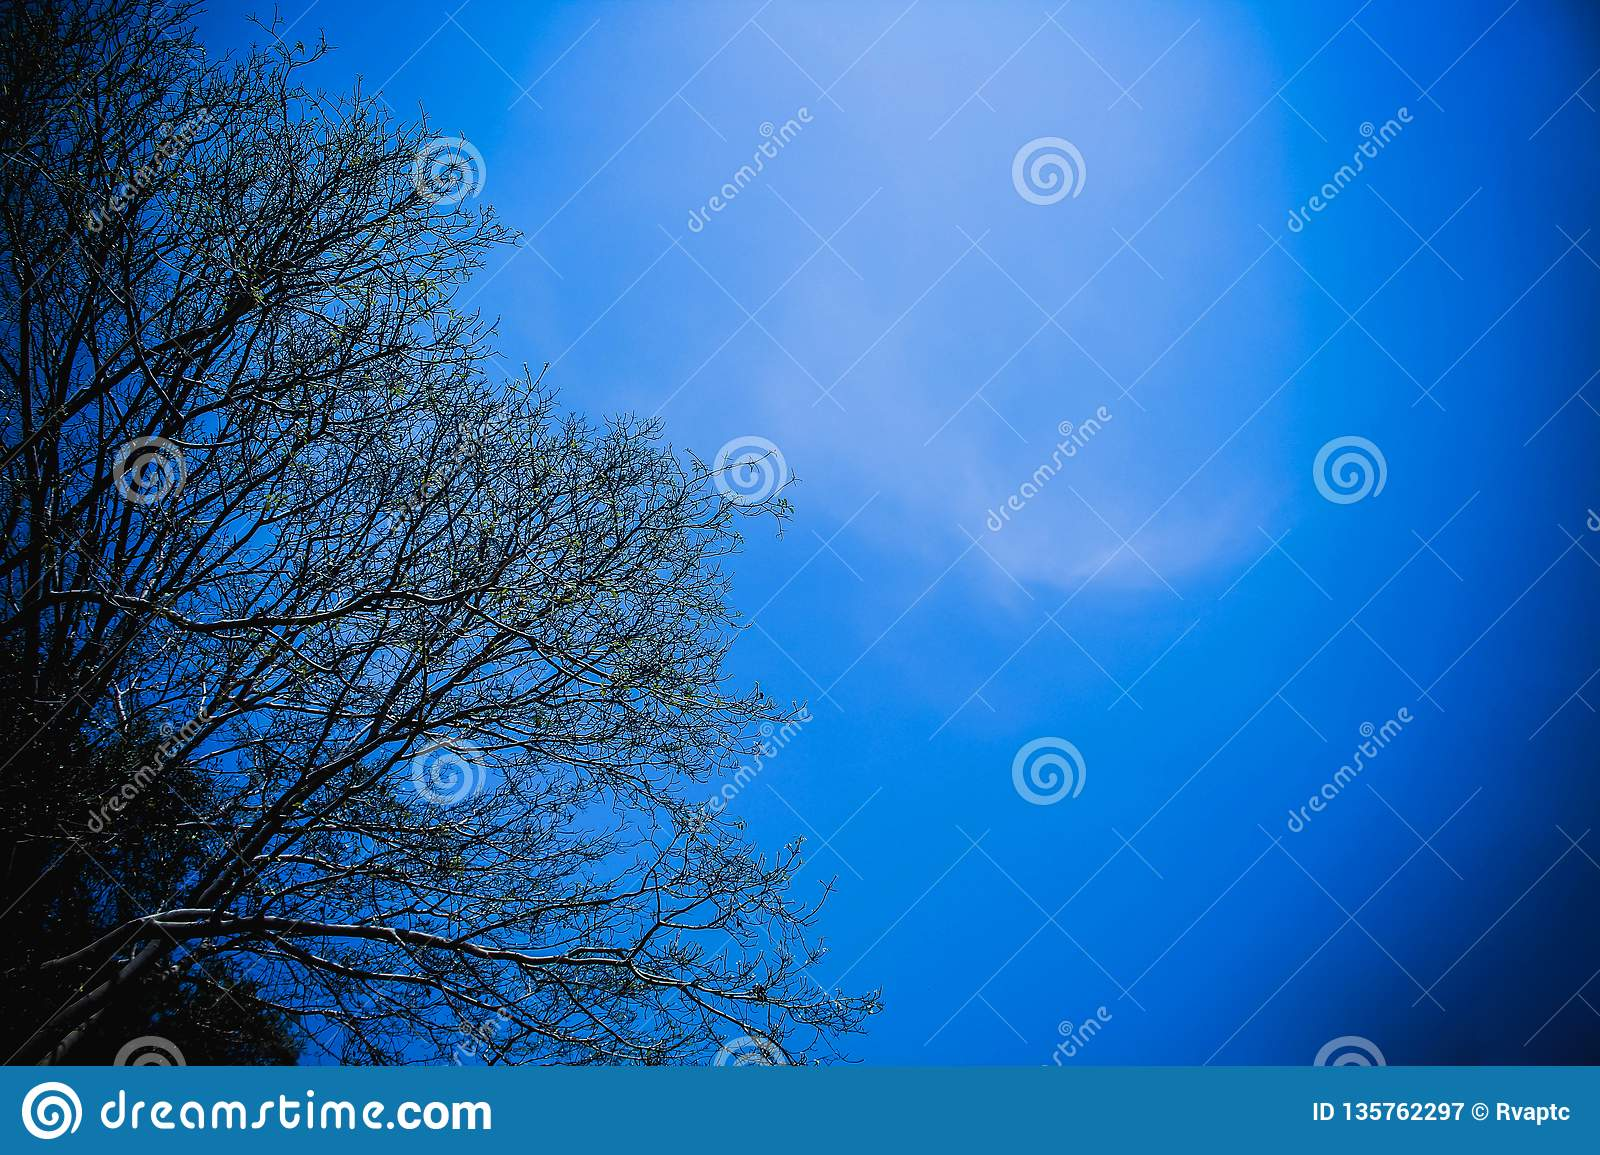 Tree Branches And Clear Blue Sky